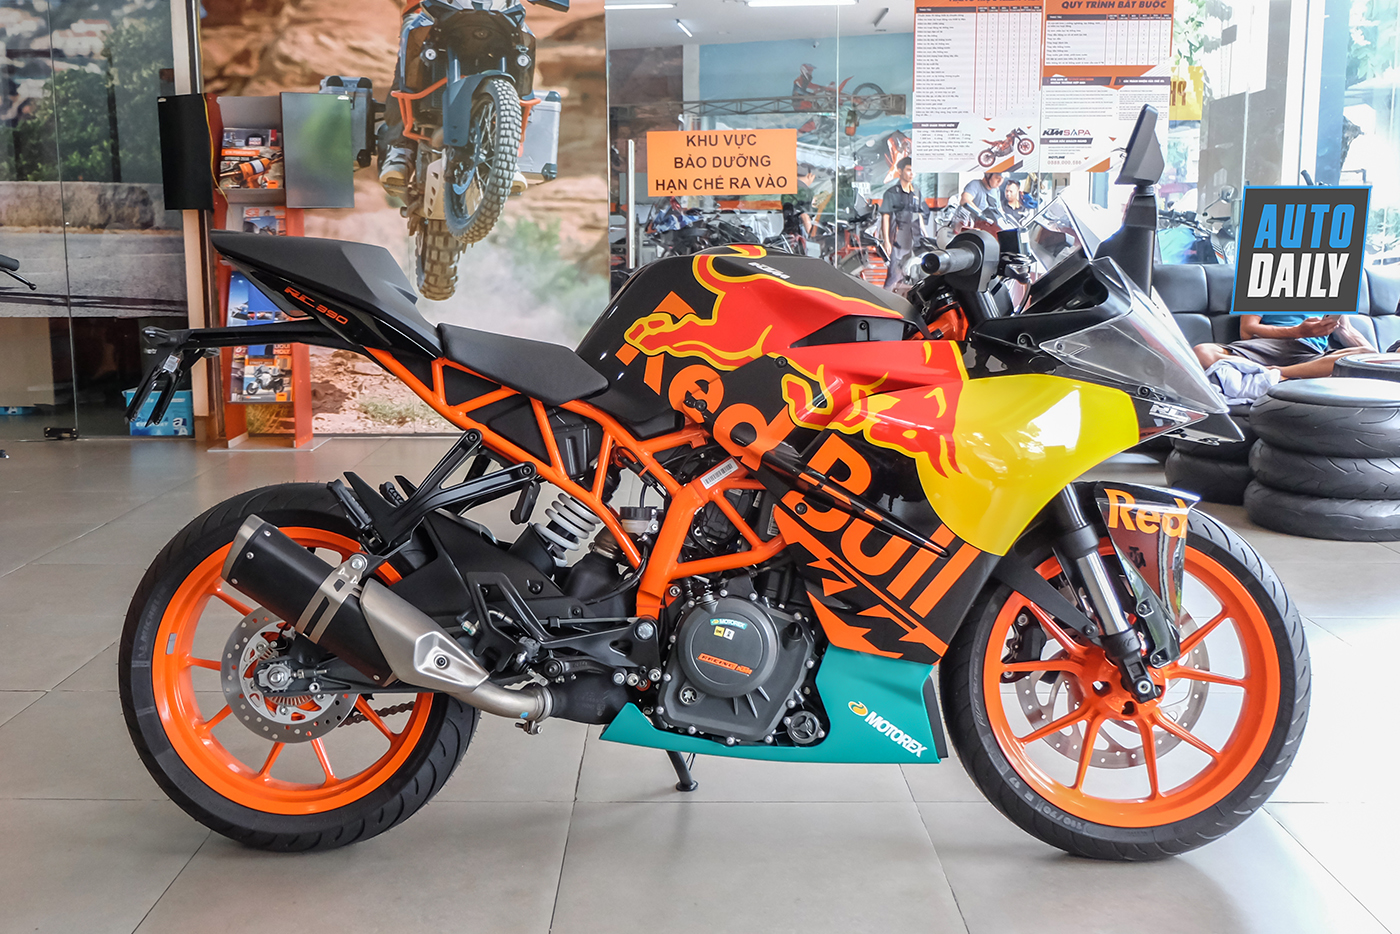 ktm-rc-390-motogp-edition-3.jpg